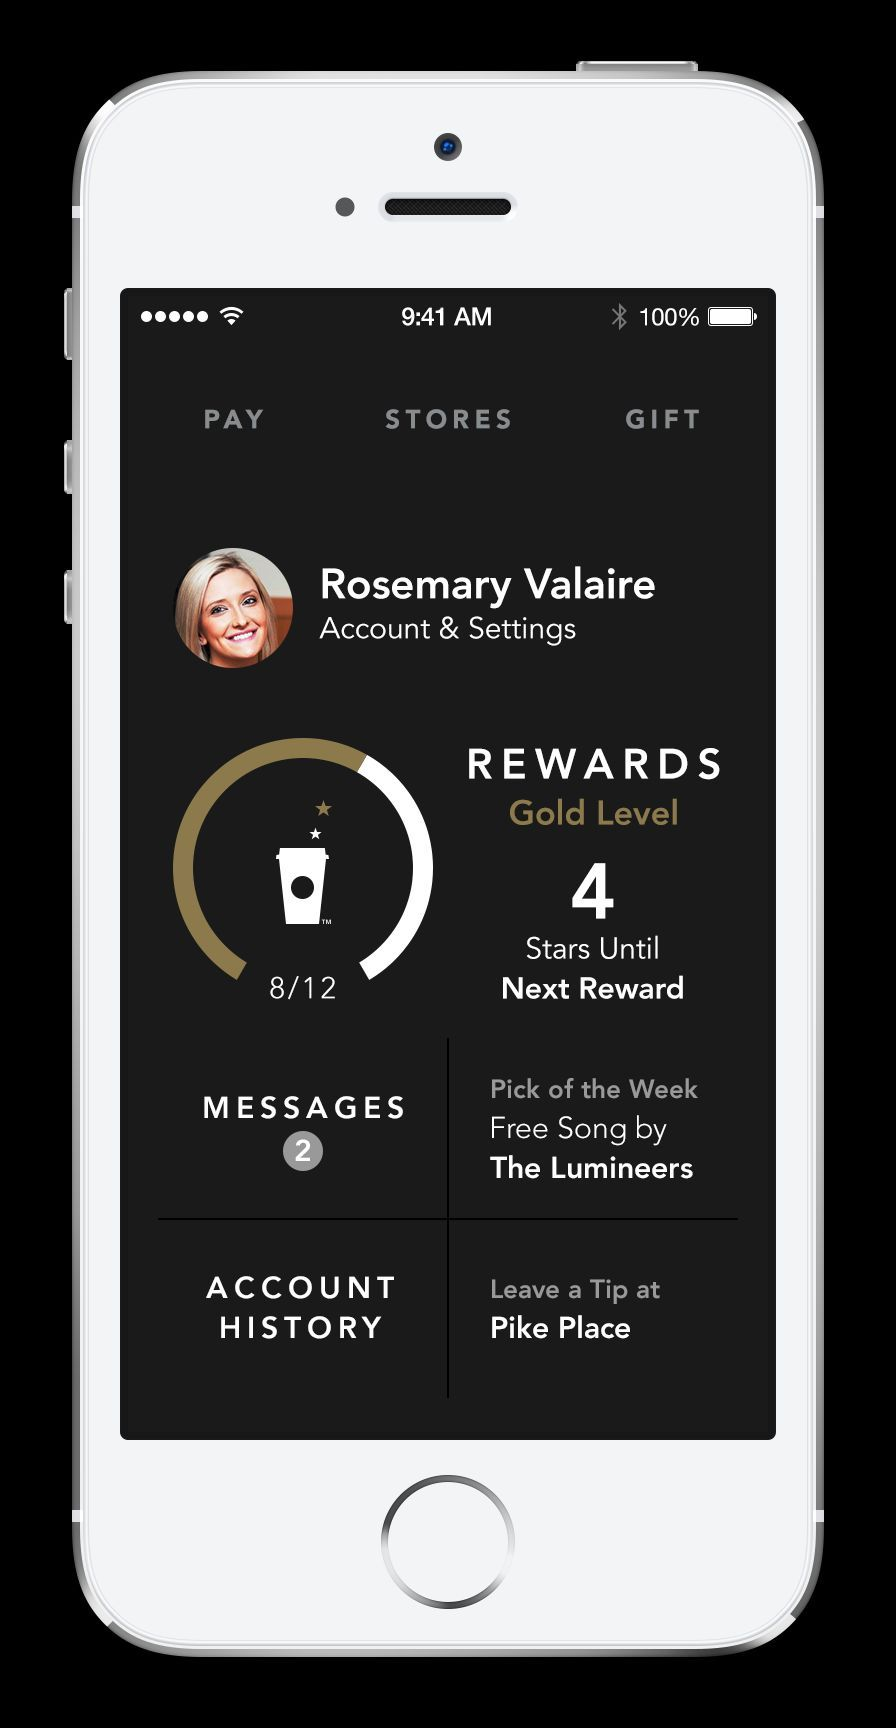 Starbucks enhancements to its mobile app for iPhone include a streamlined design and user experience. (Photo: Business Wire)